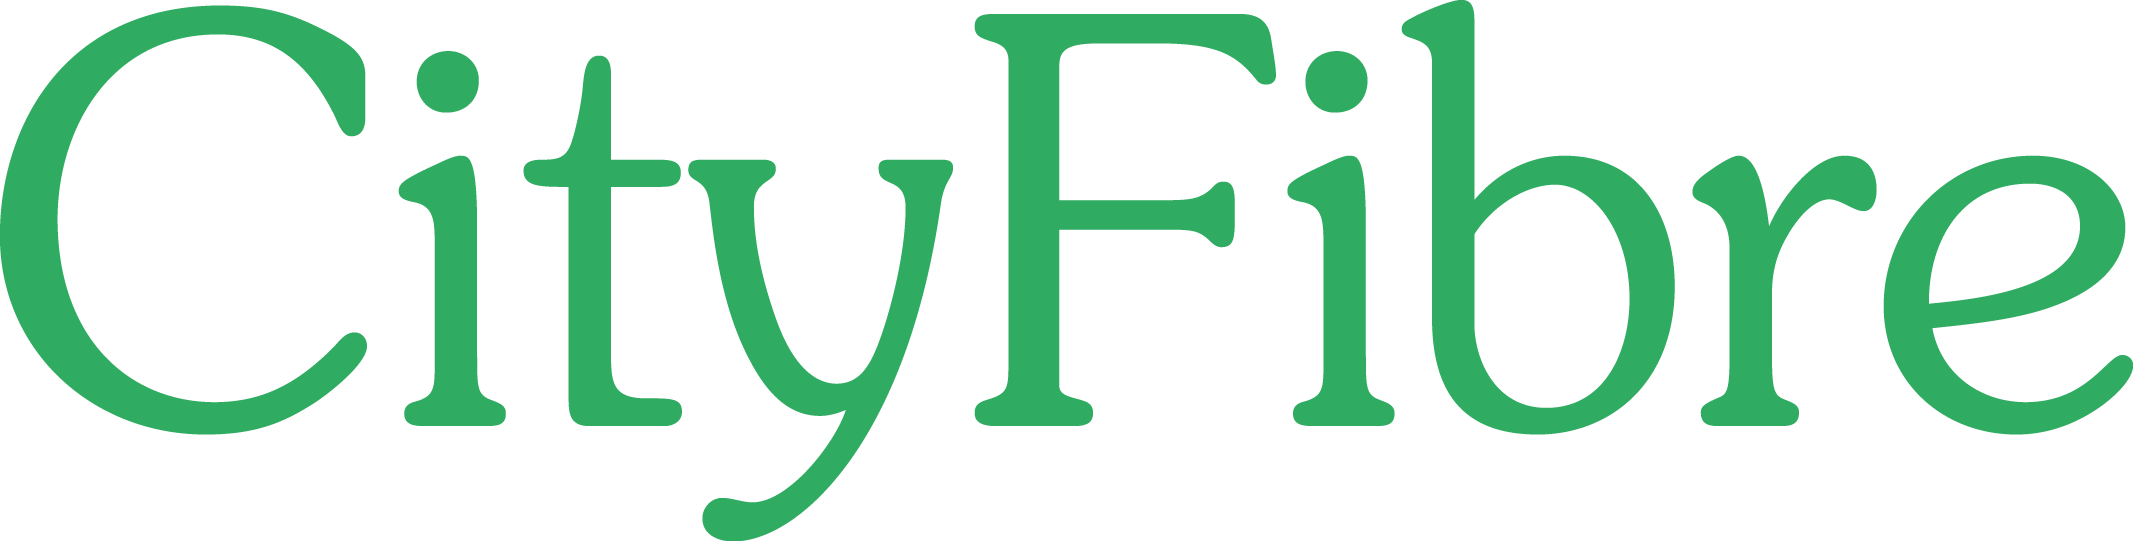 key_CF-logo-New-Green.png